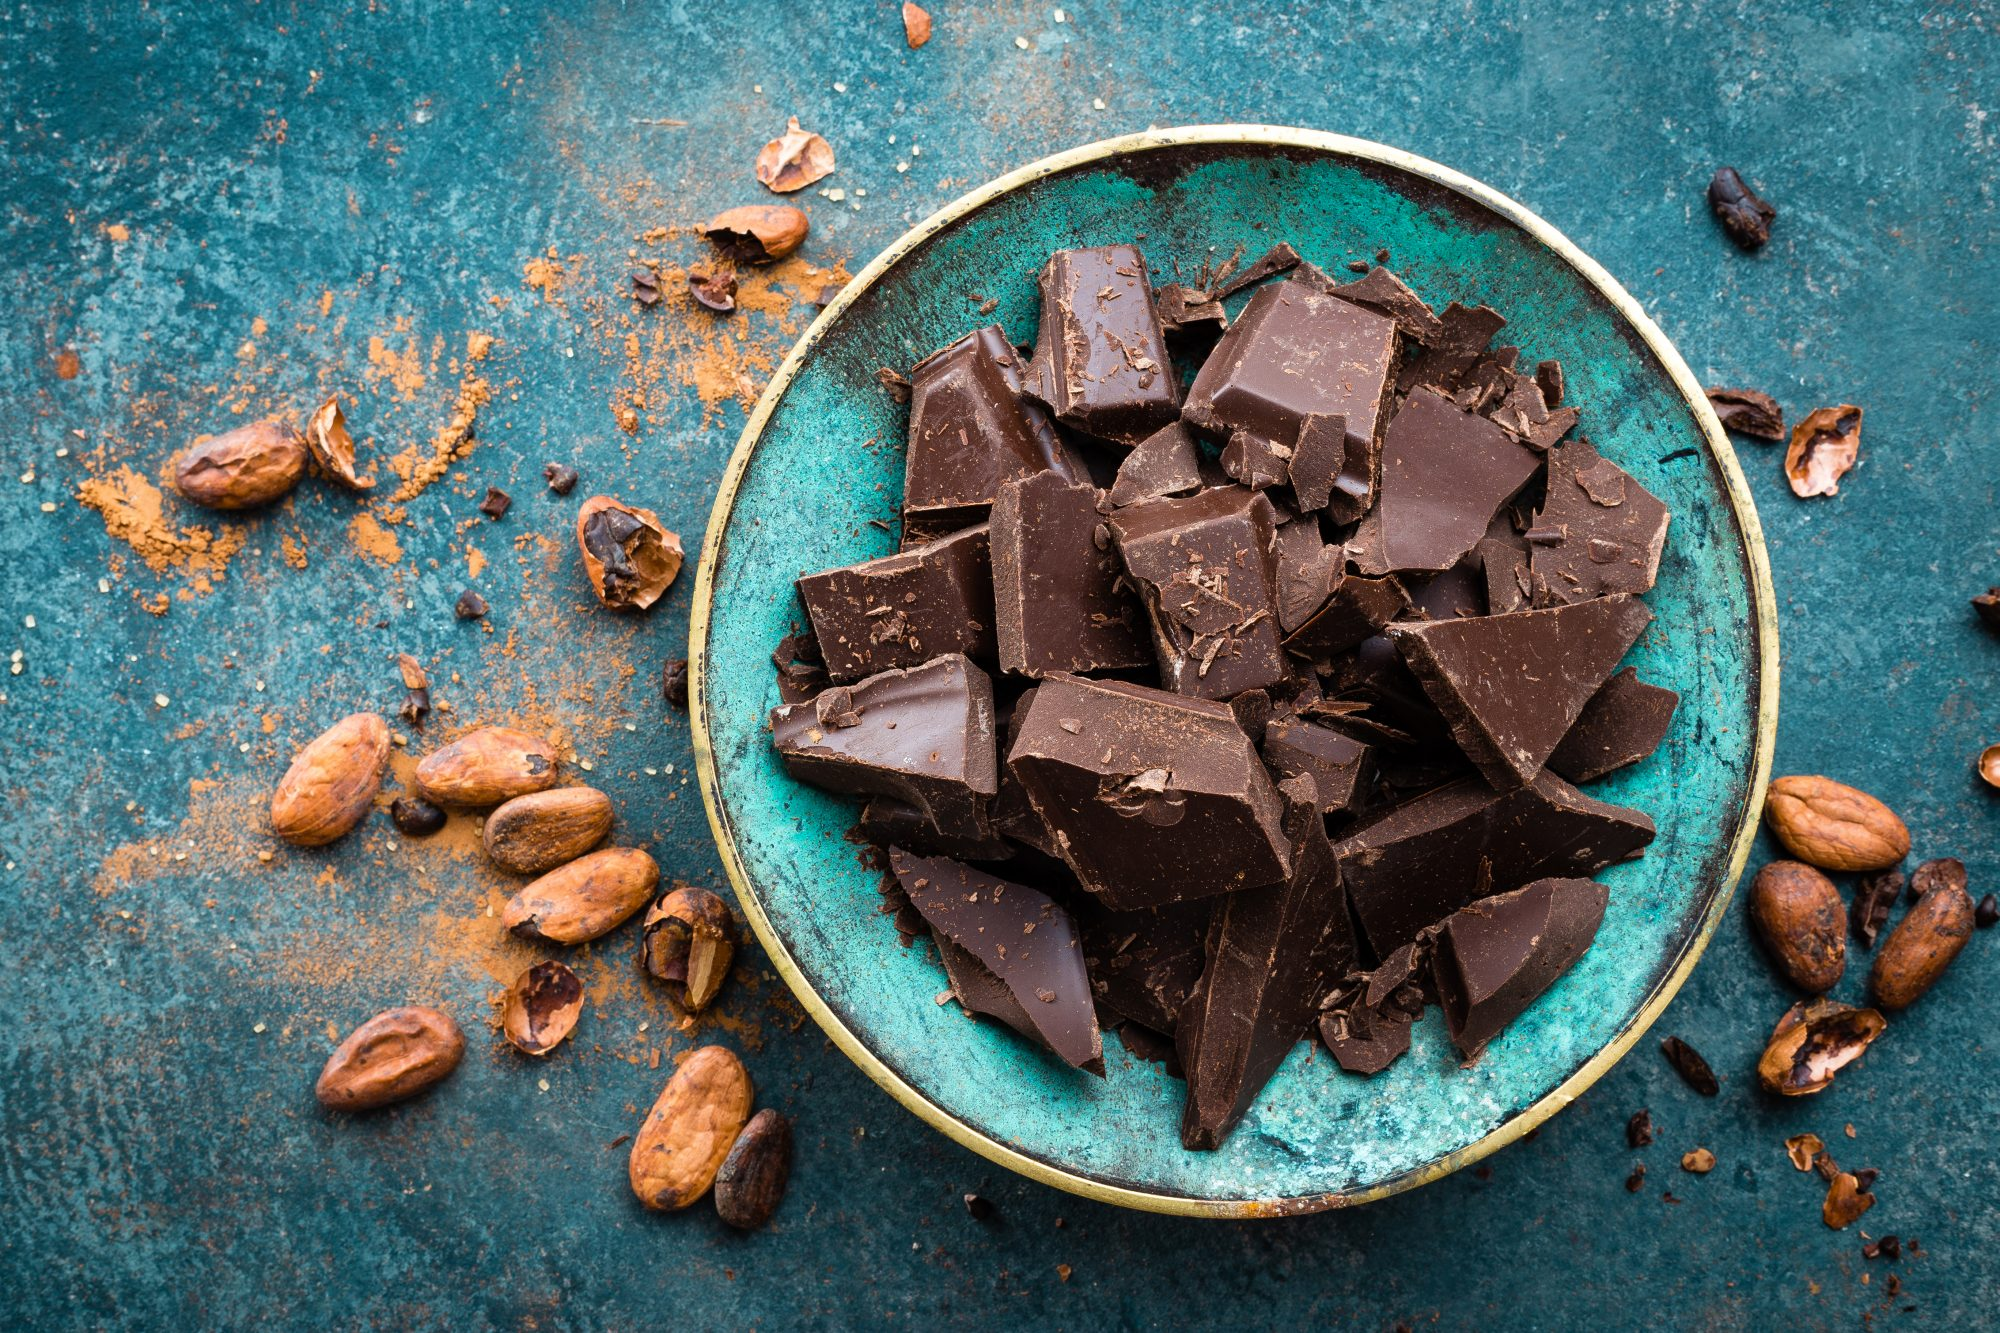 Foods for Anxiety: dark chocolate